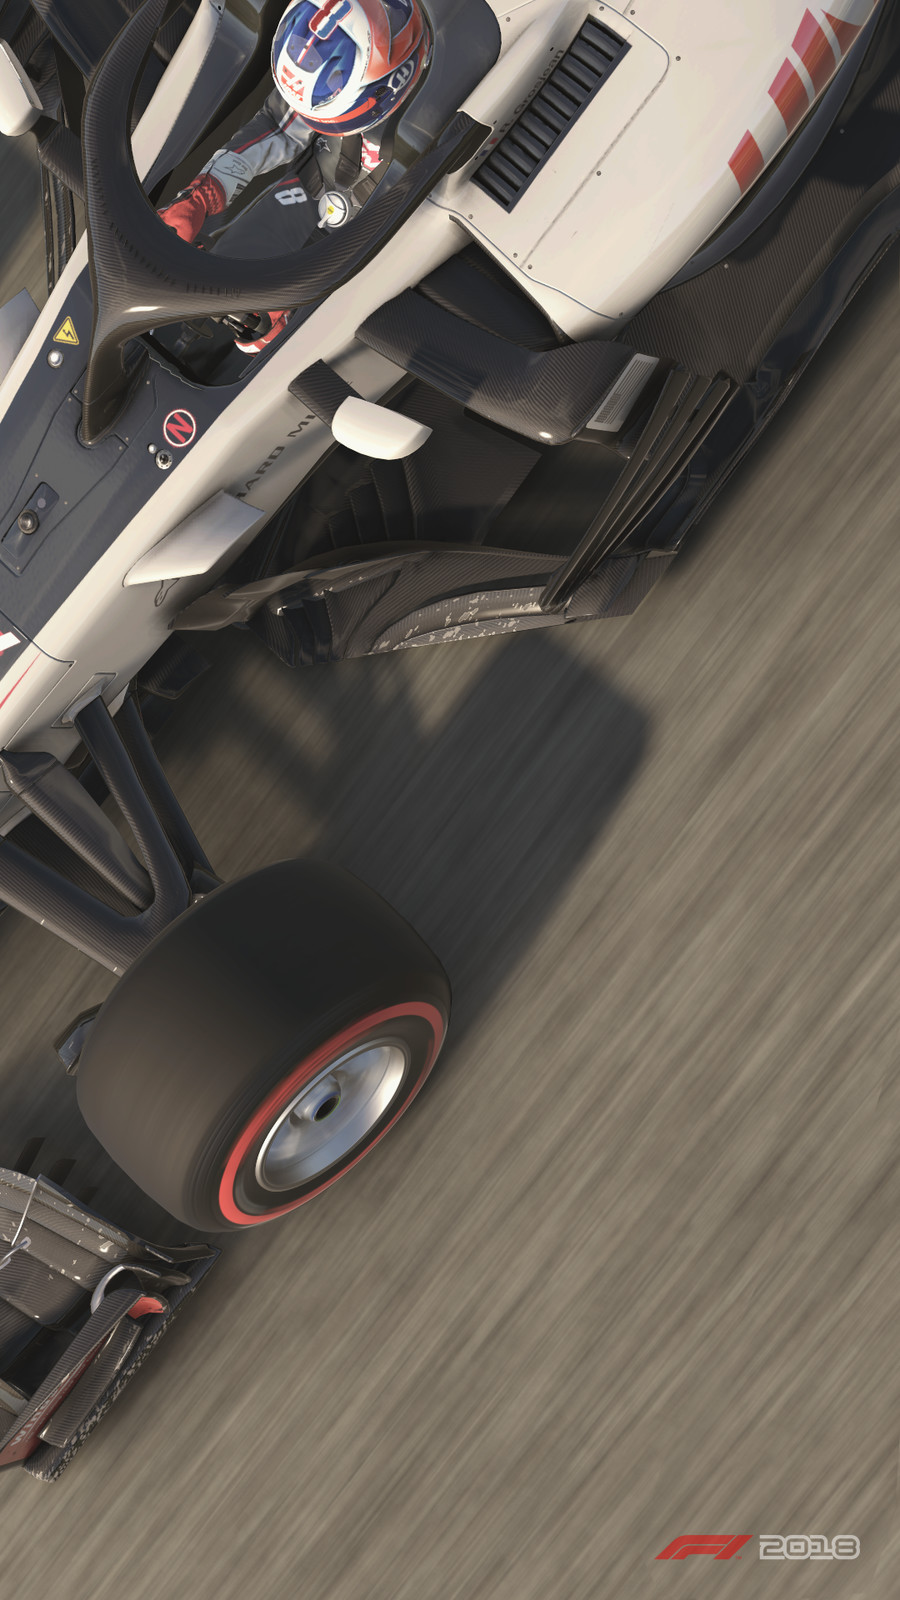 F1 2018 In Game Screen Grabs